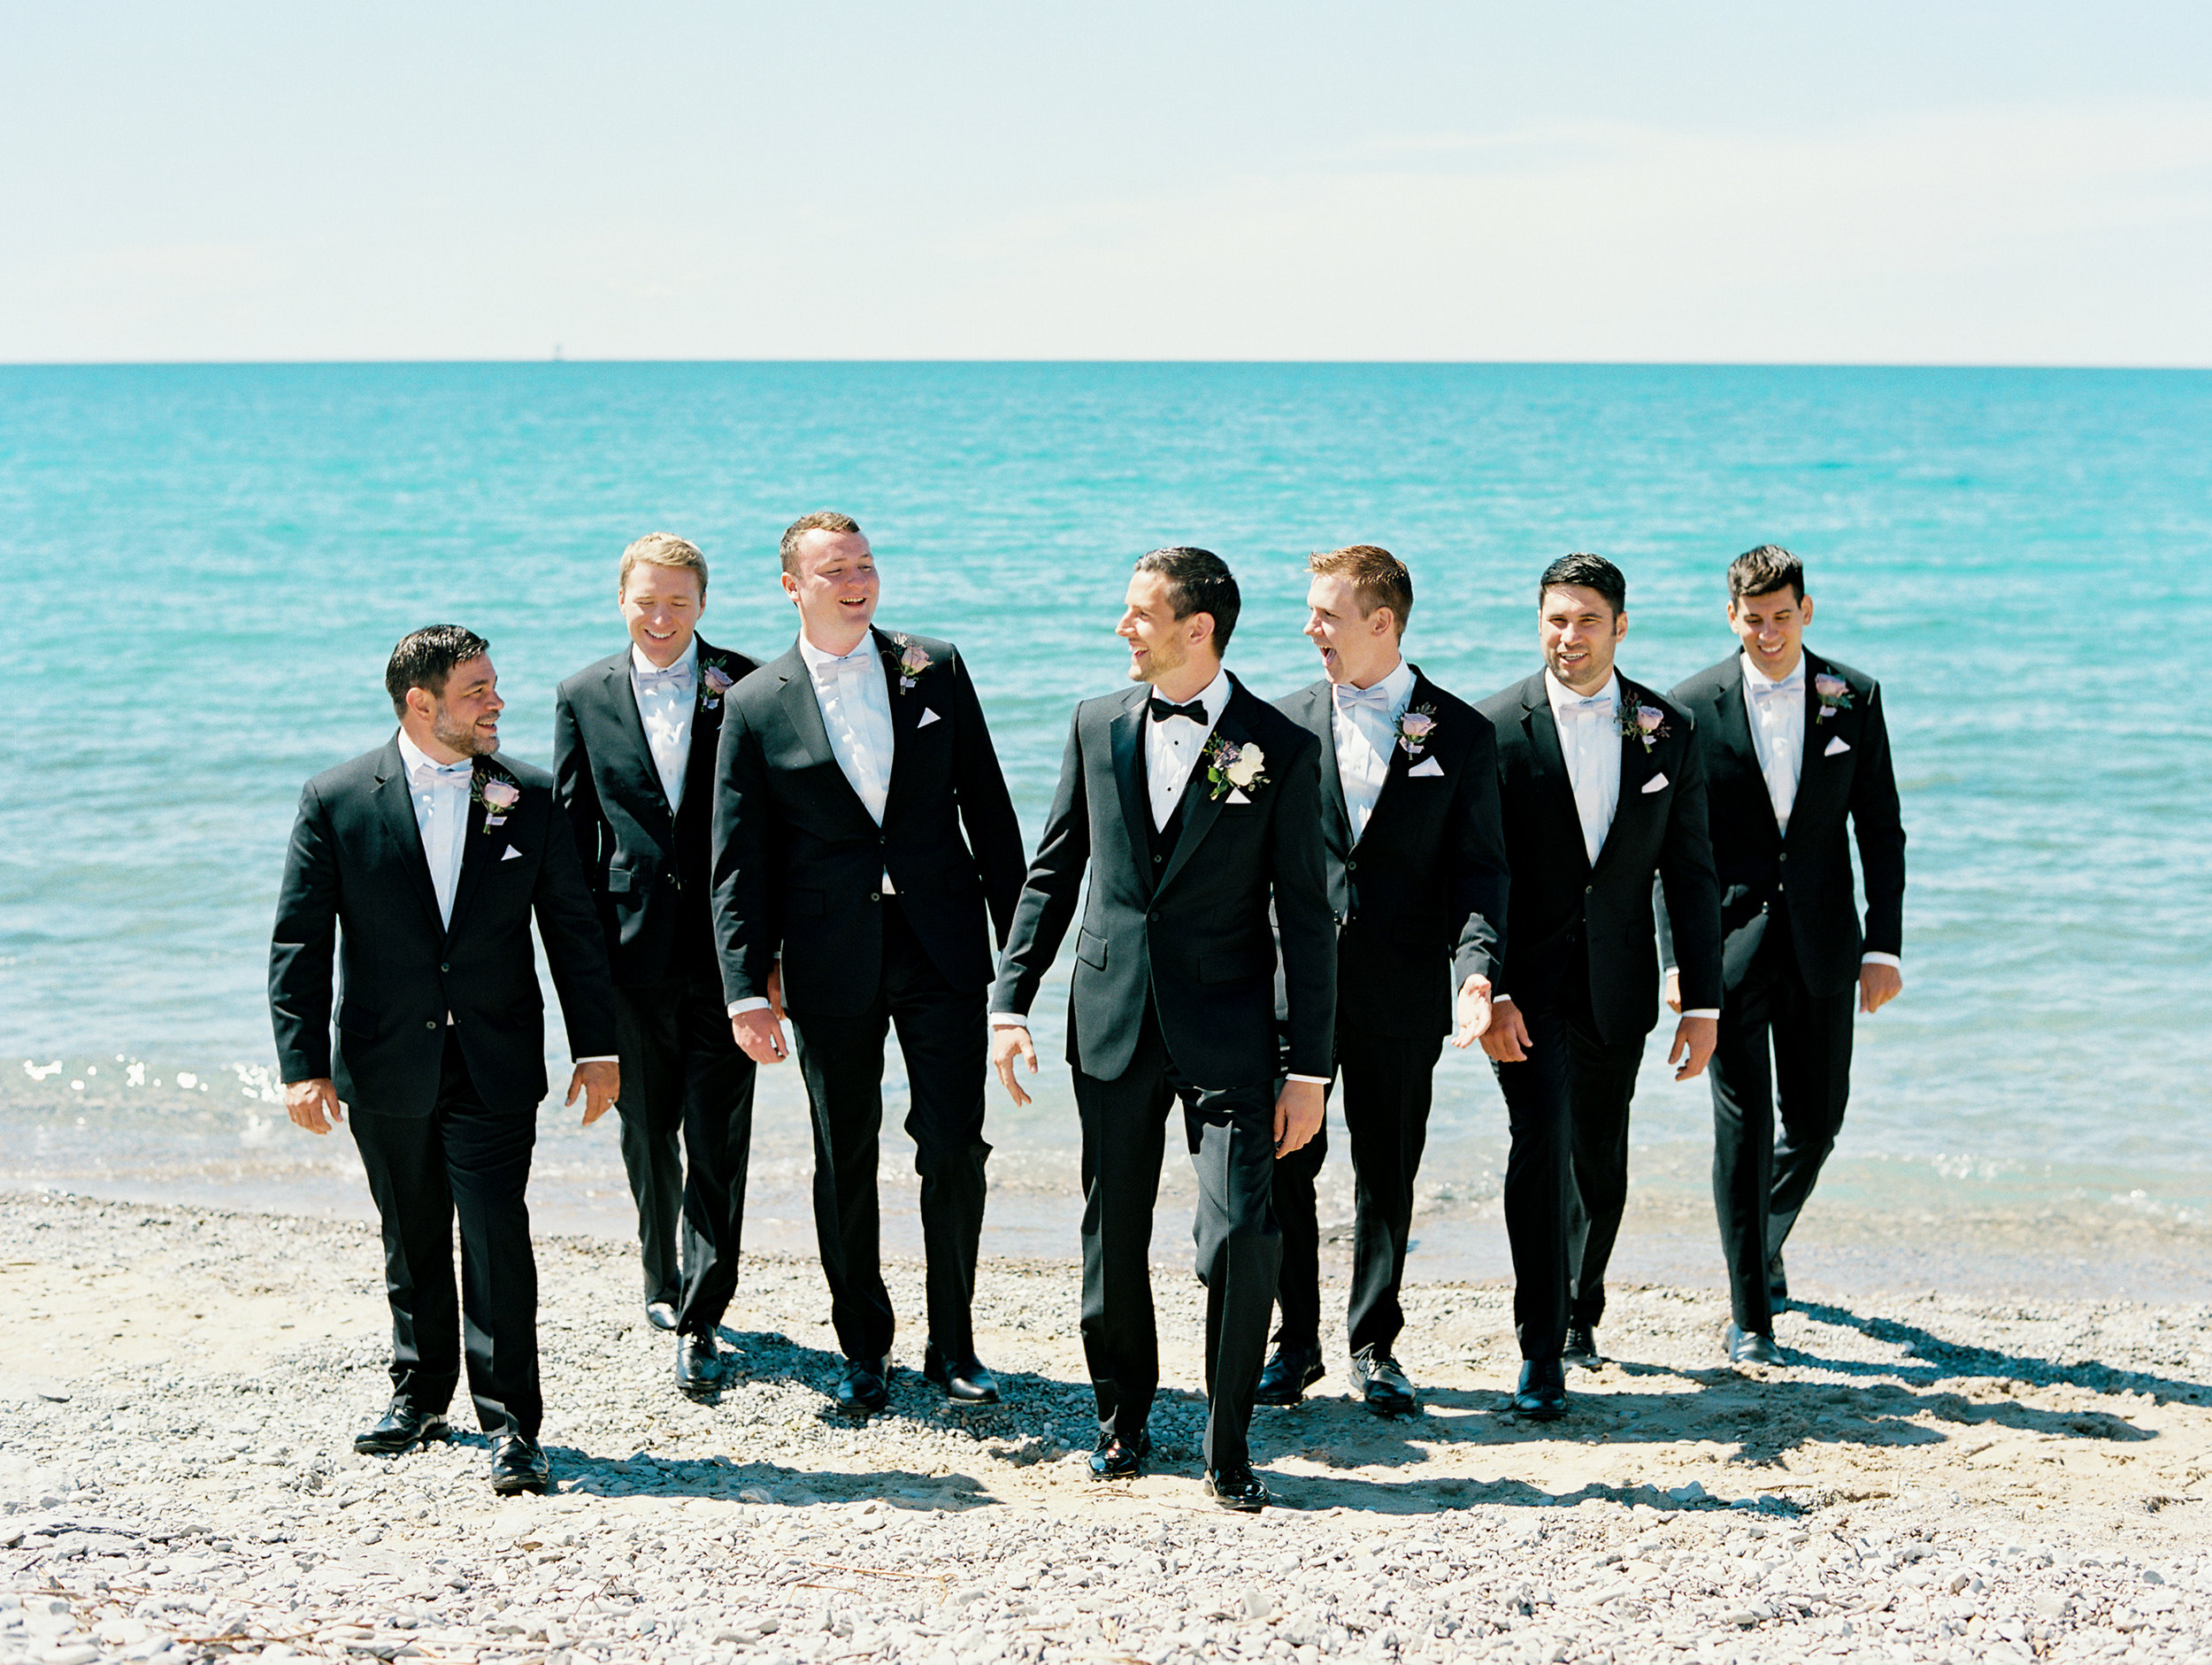 Noss+Wedding+Groom+Groomsmen-40.jpg